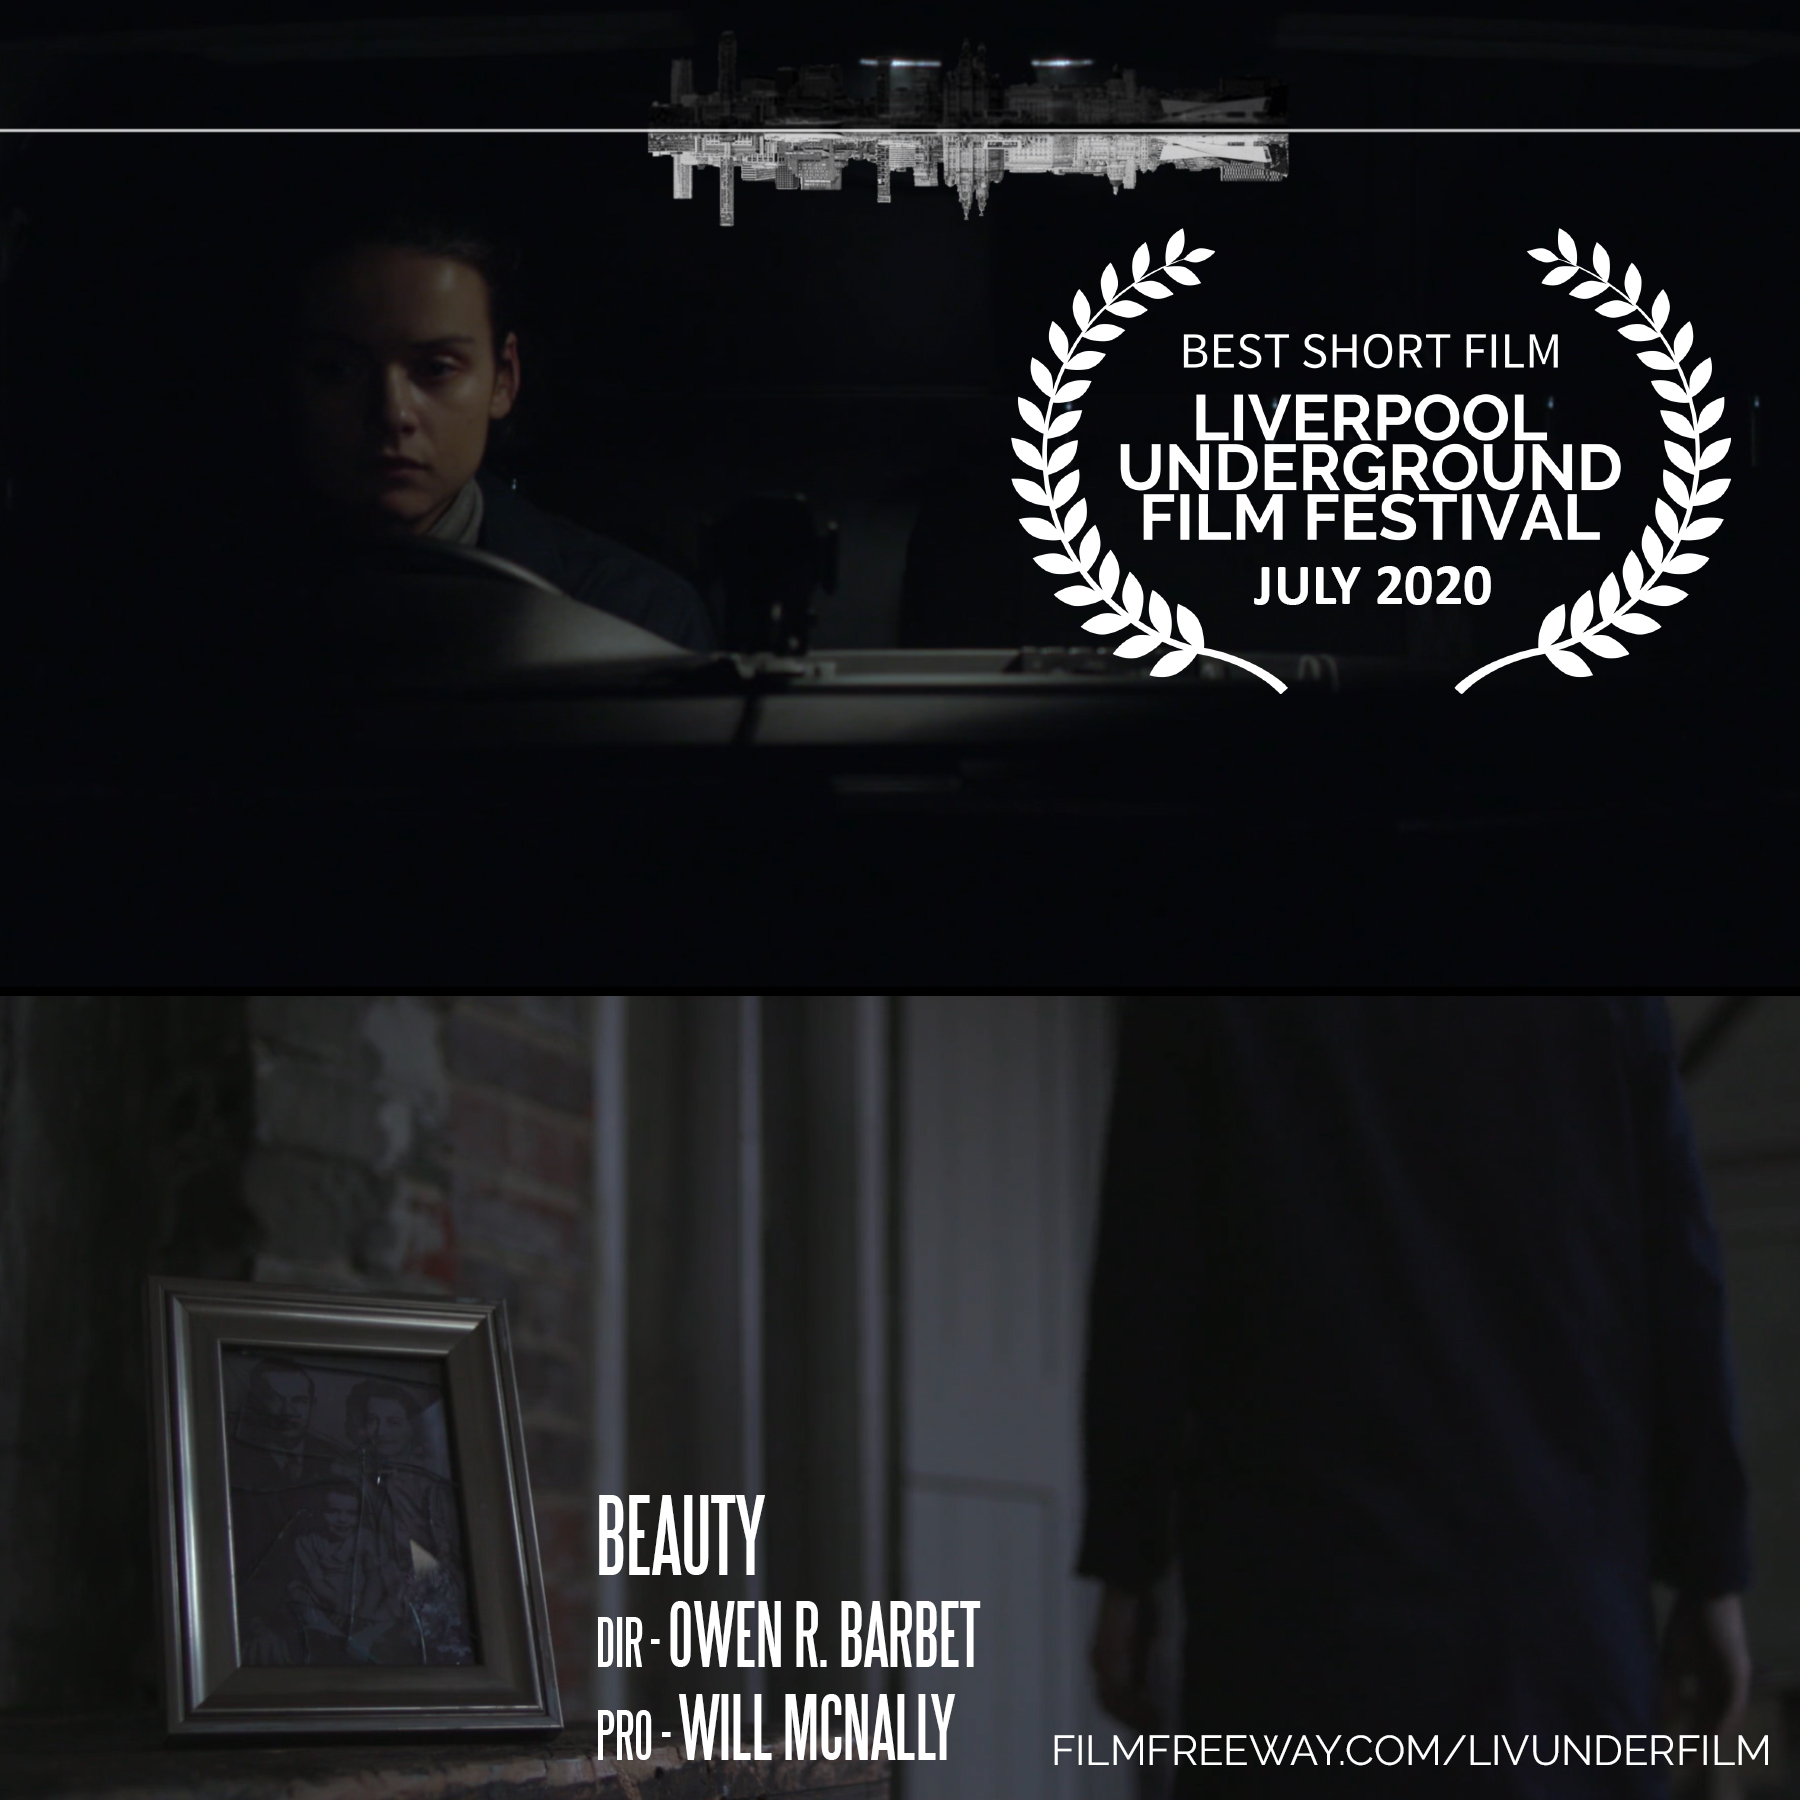 Best Short Film July